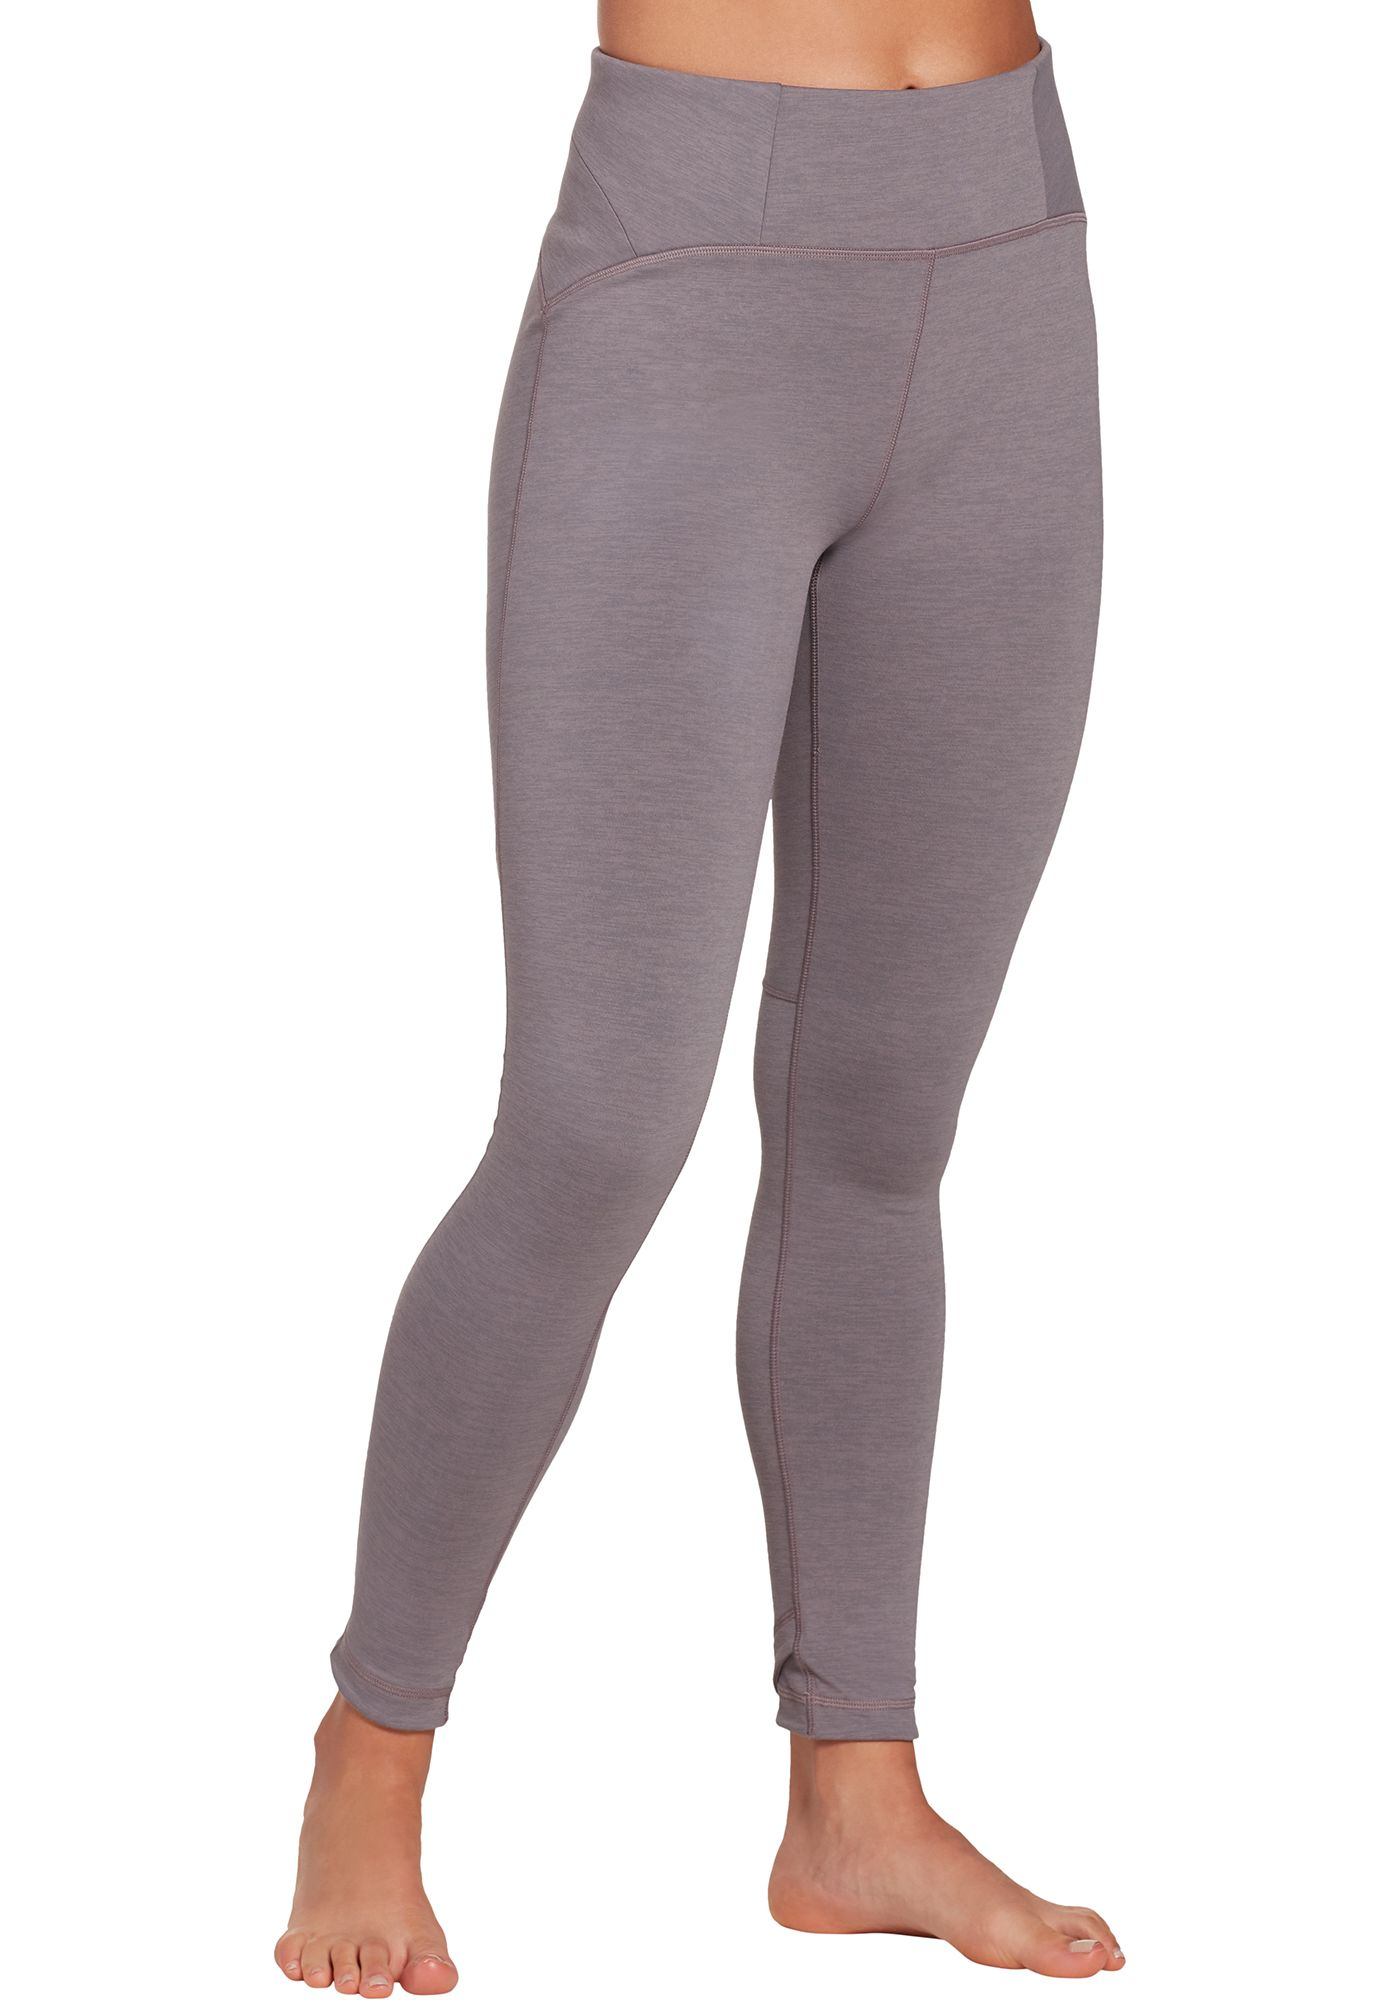 CALIA by Carrie Underwood Women's Cold Weather Compression Tulip Hem Leggings